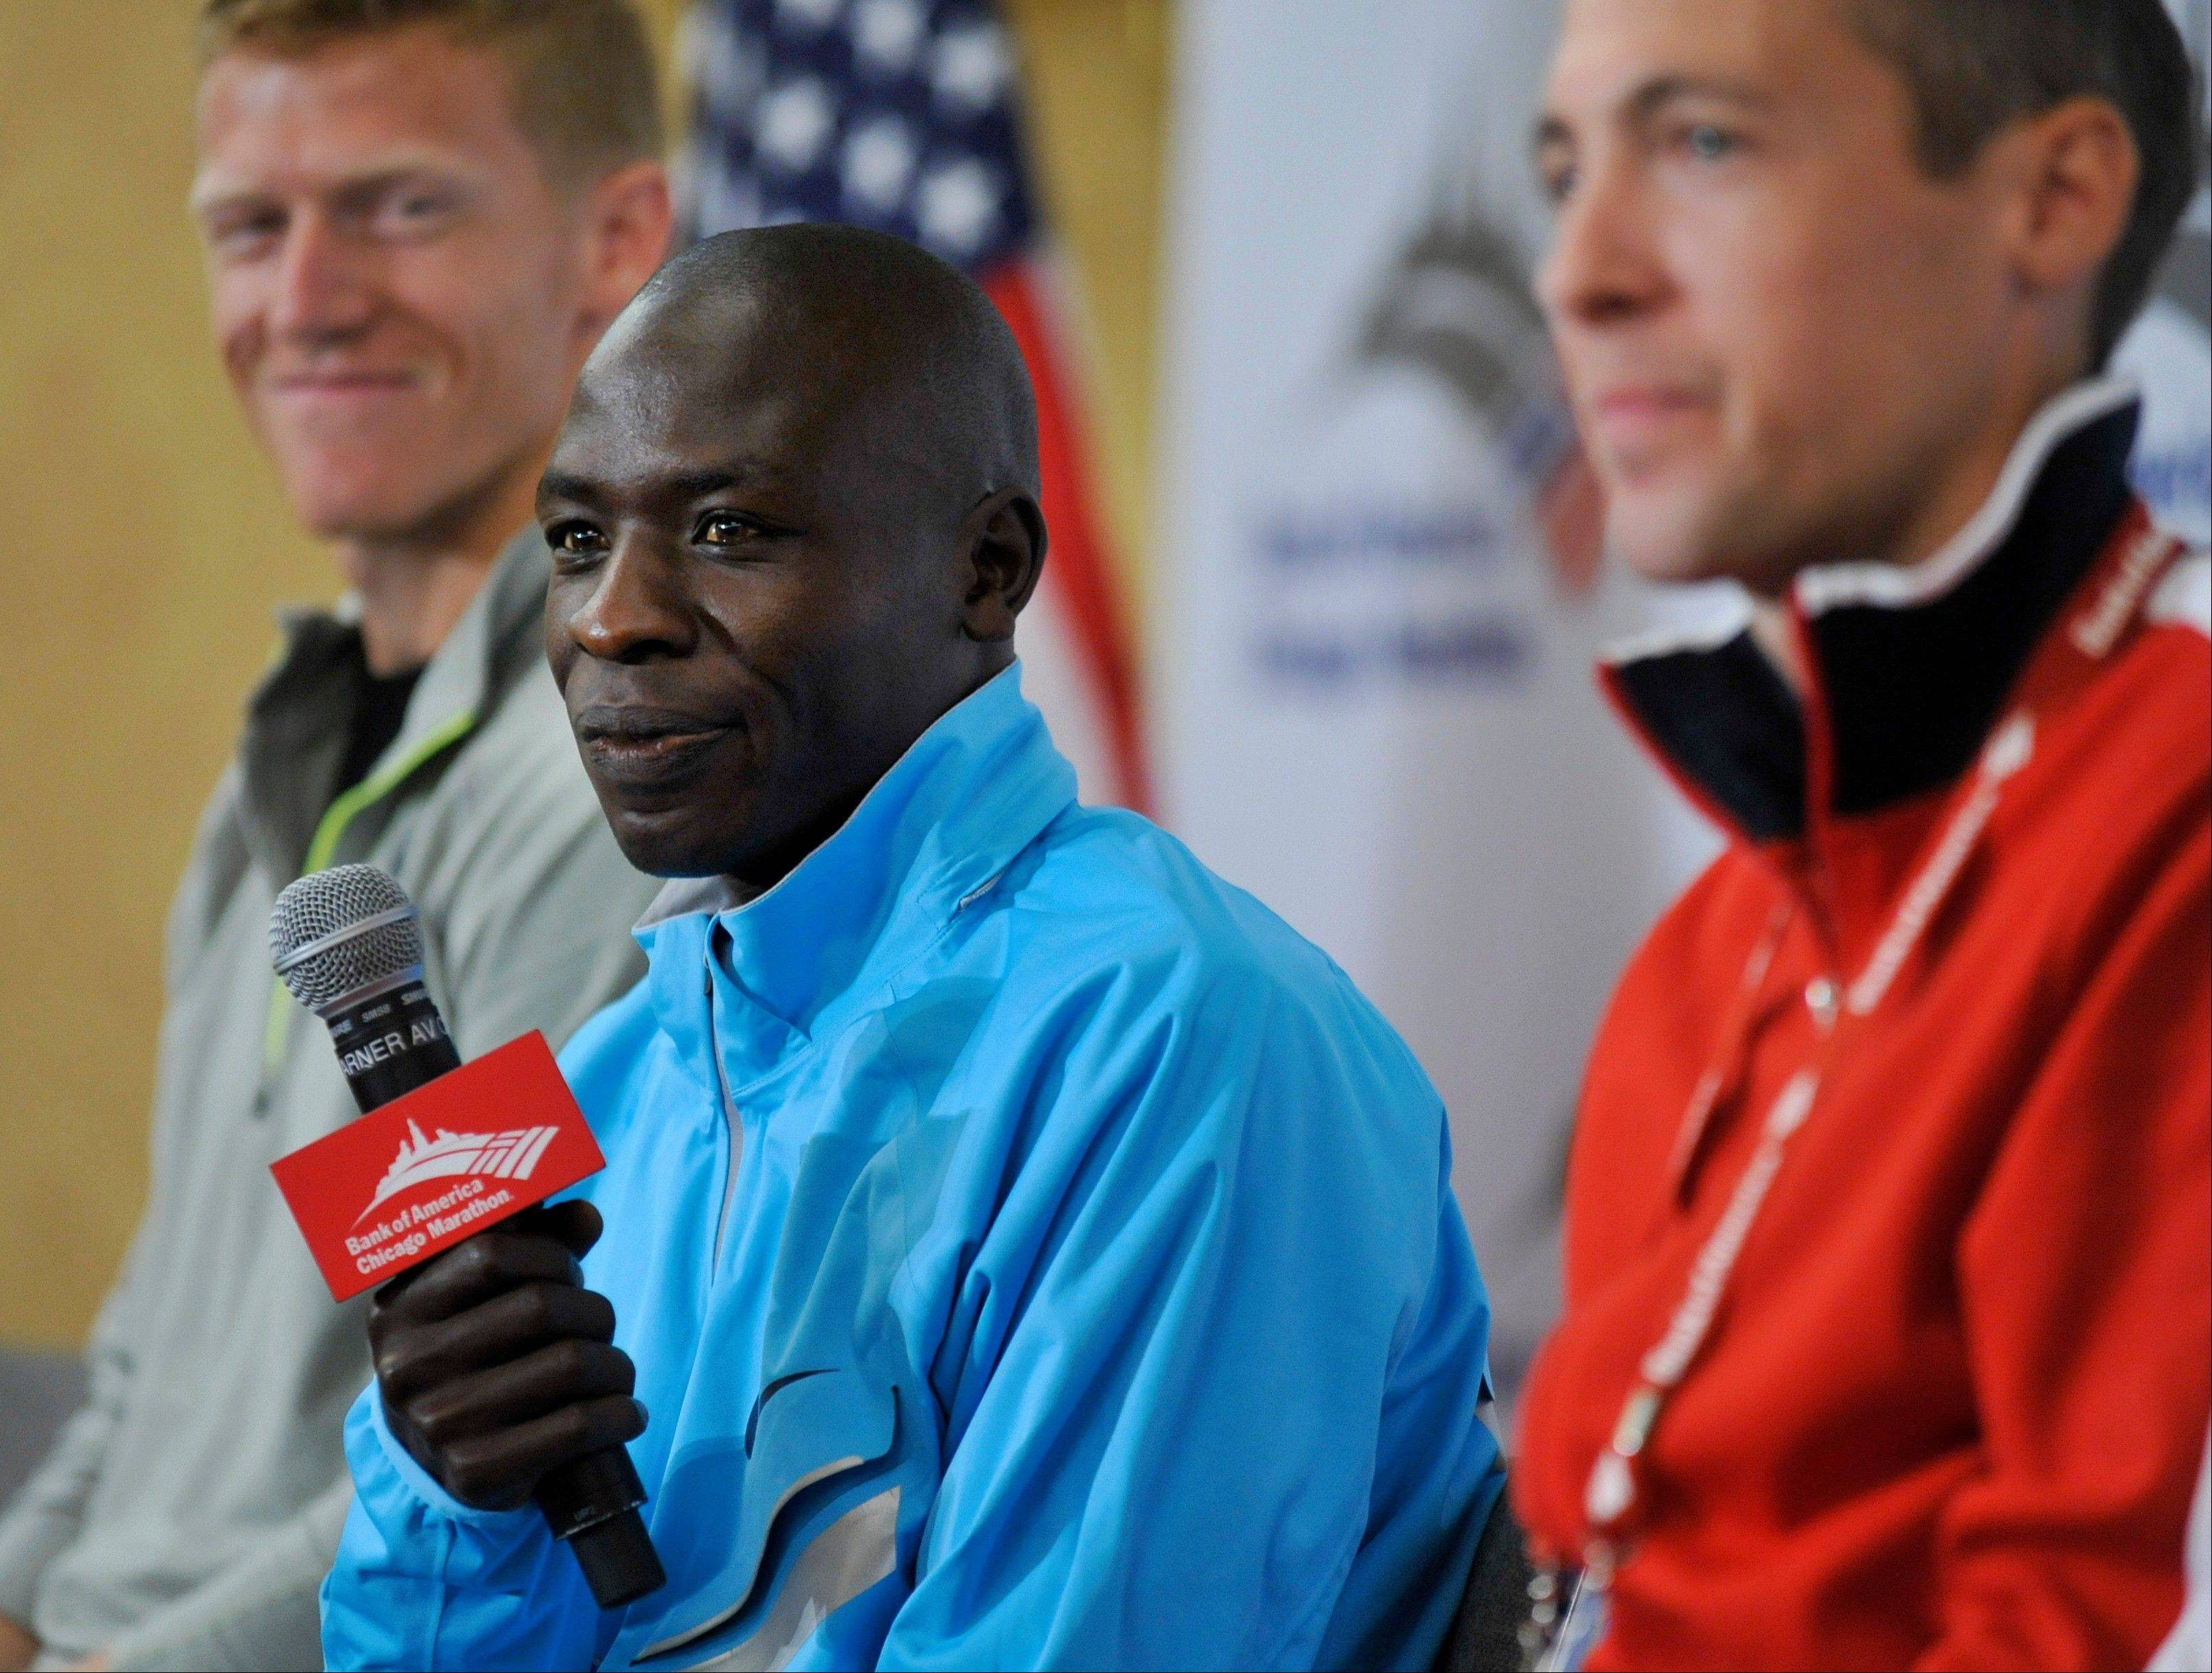 Chicago Marathon field looks solid and ready